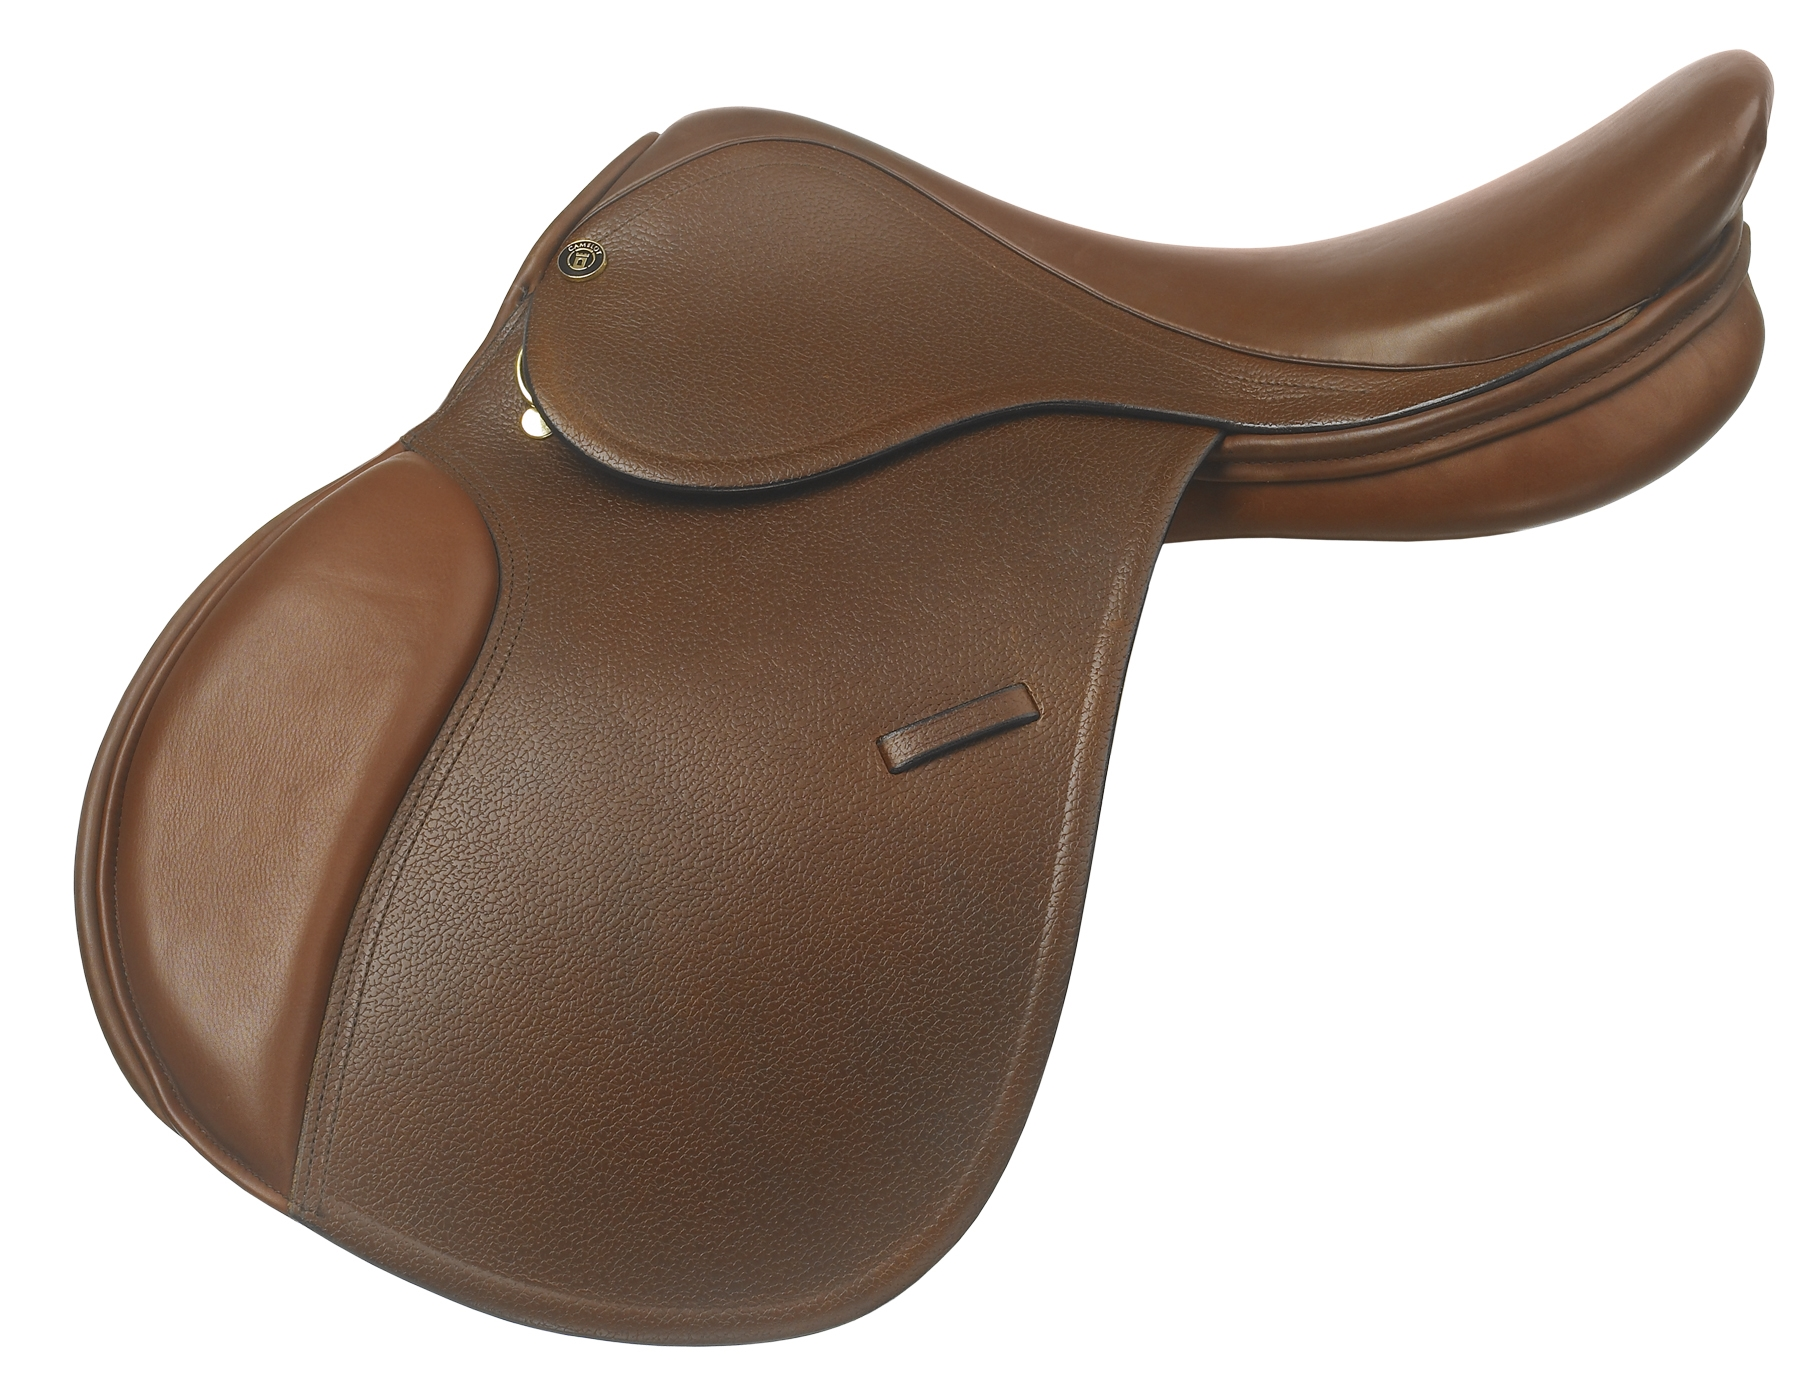 Camelot EXCELLA CC Saddle